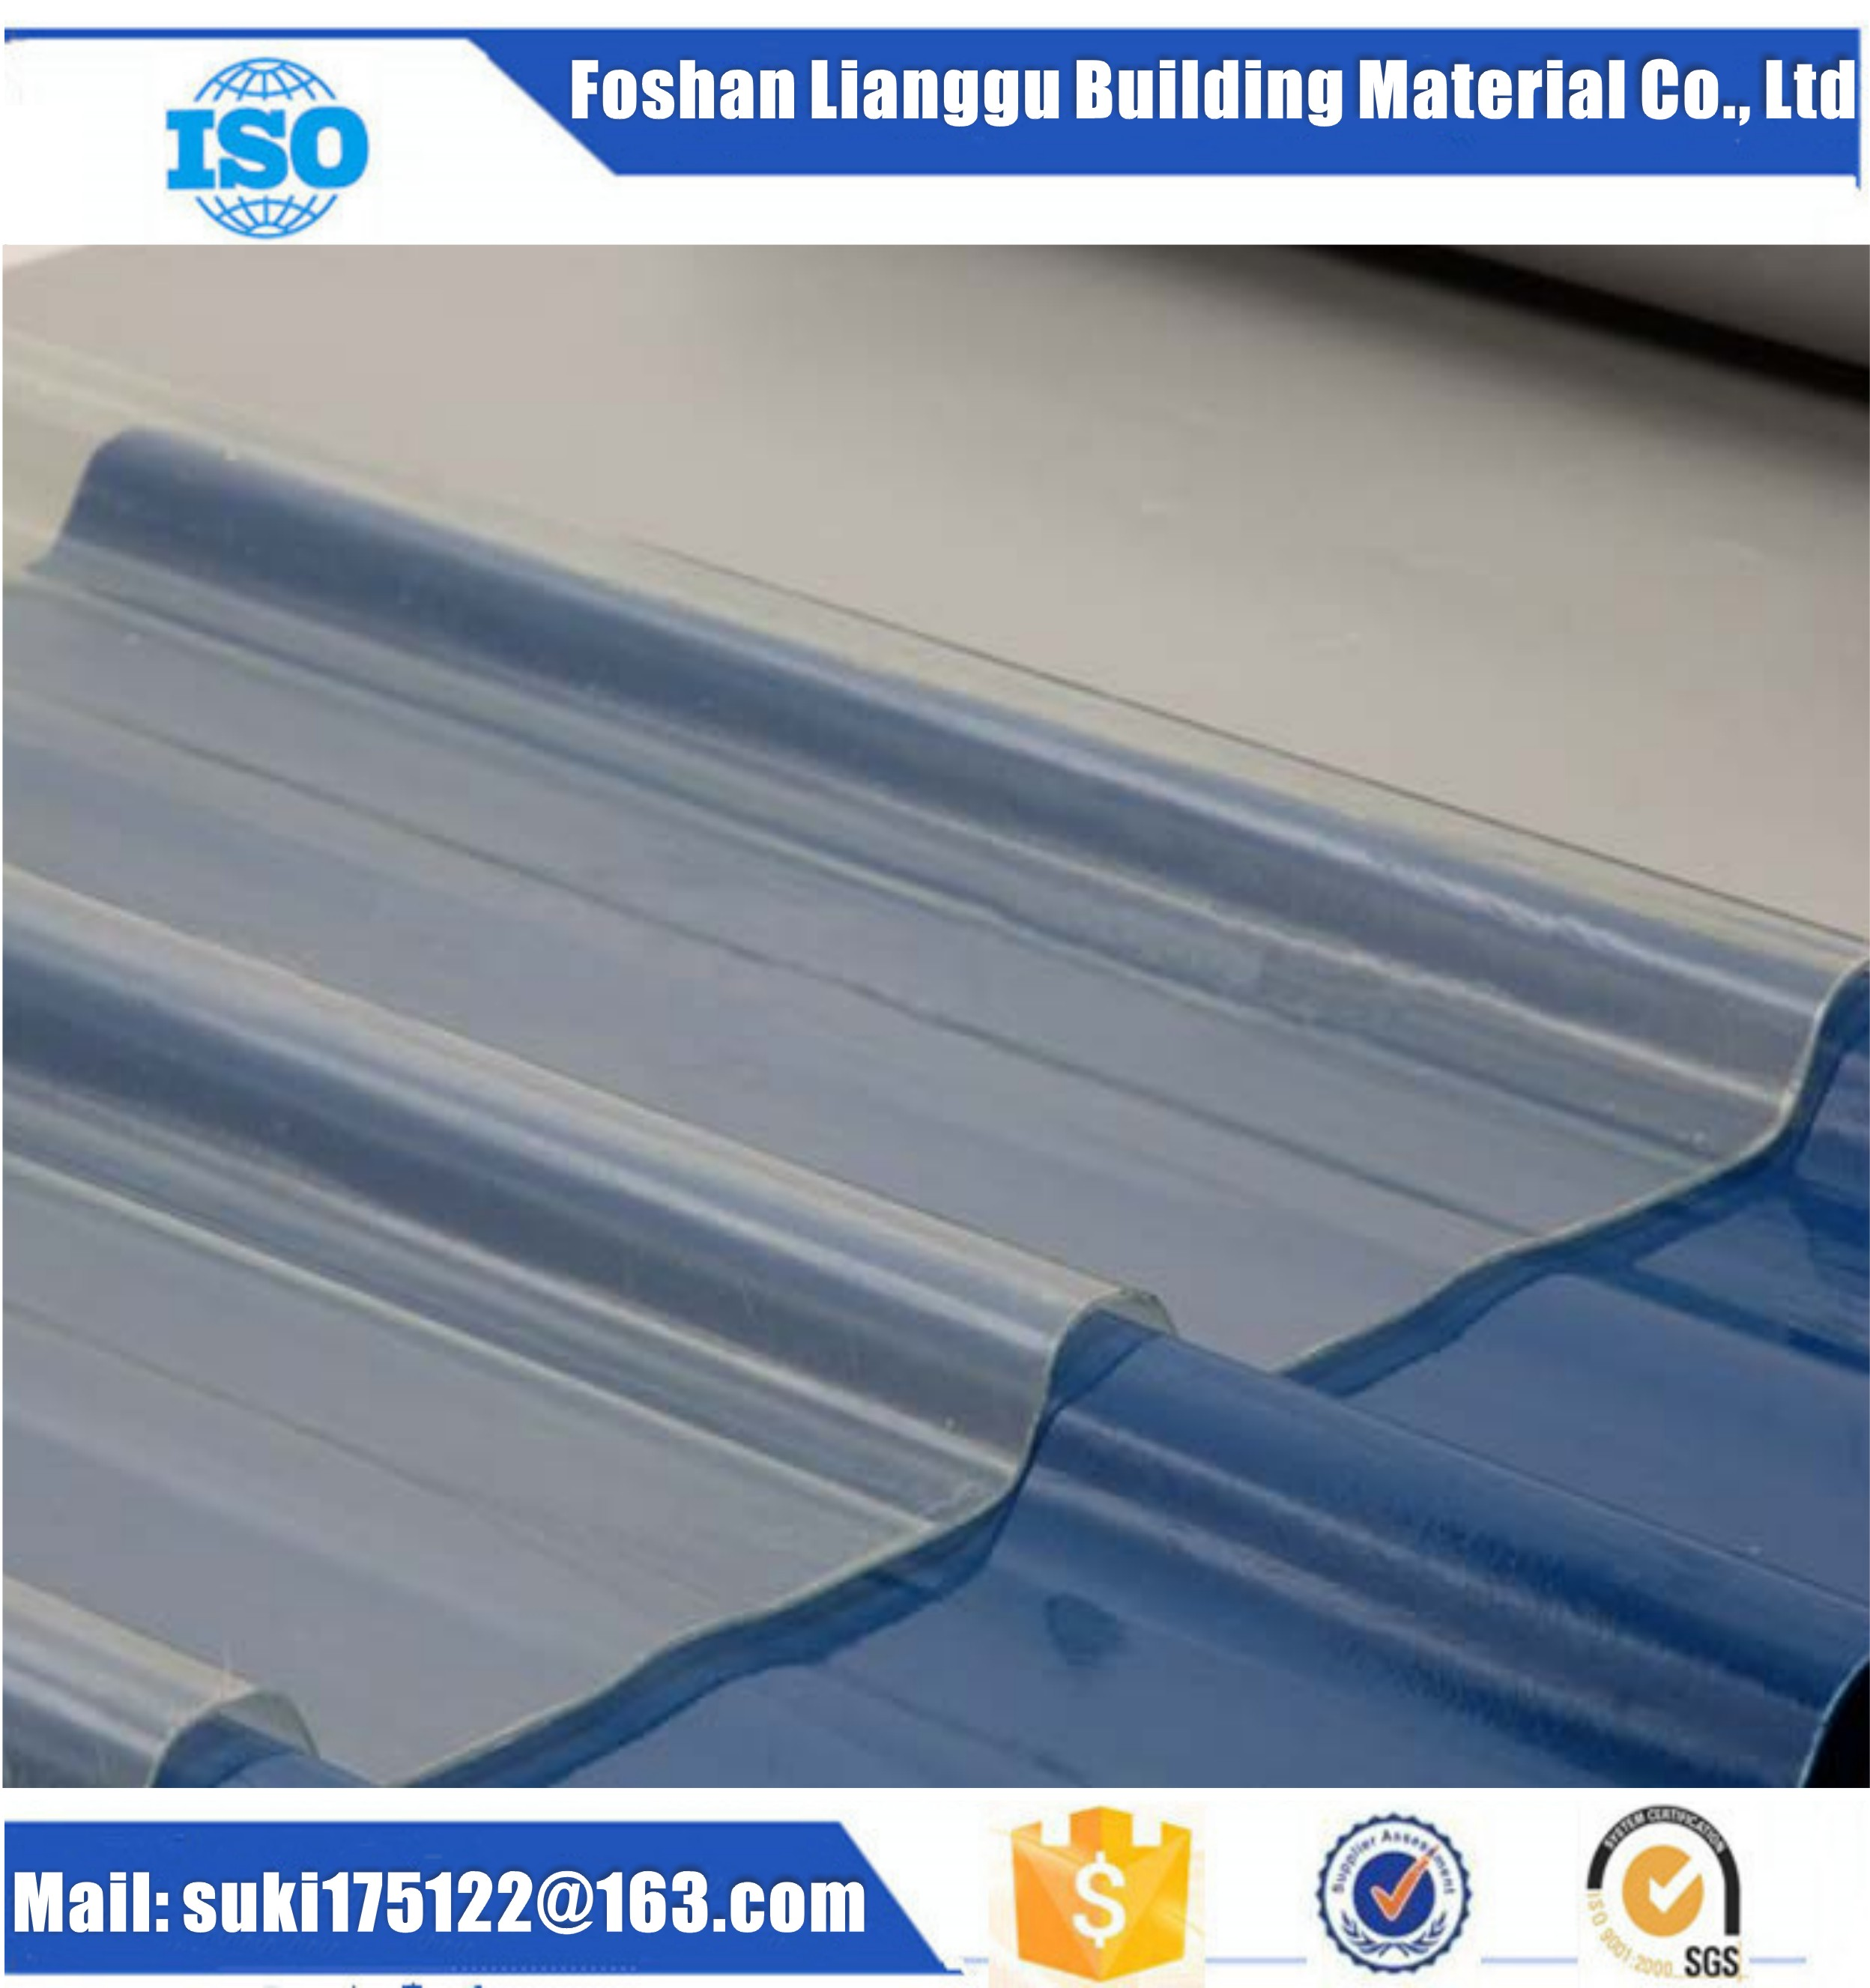 Anti-corrosive FRP Roofing Sheet